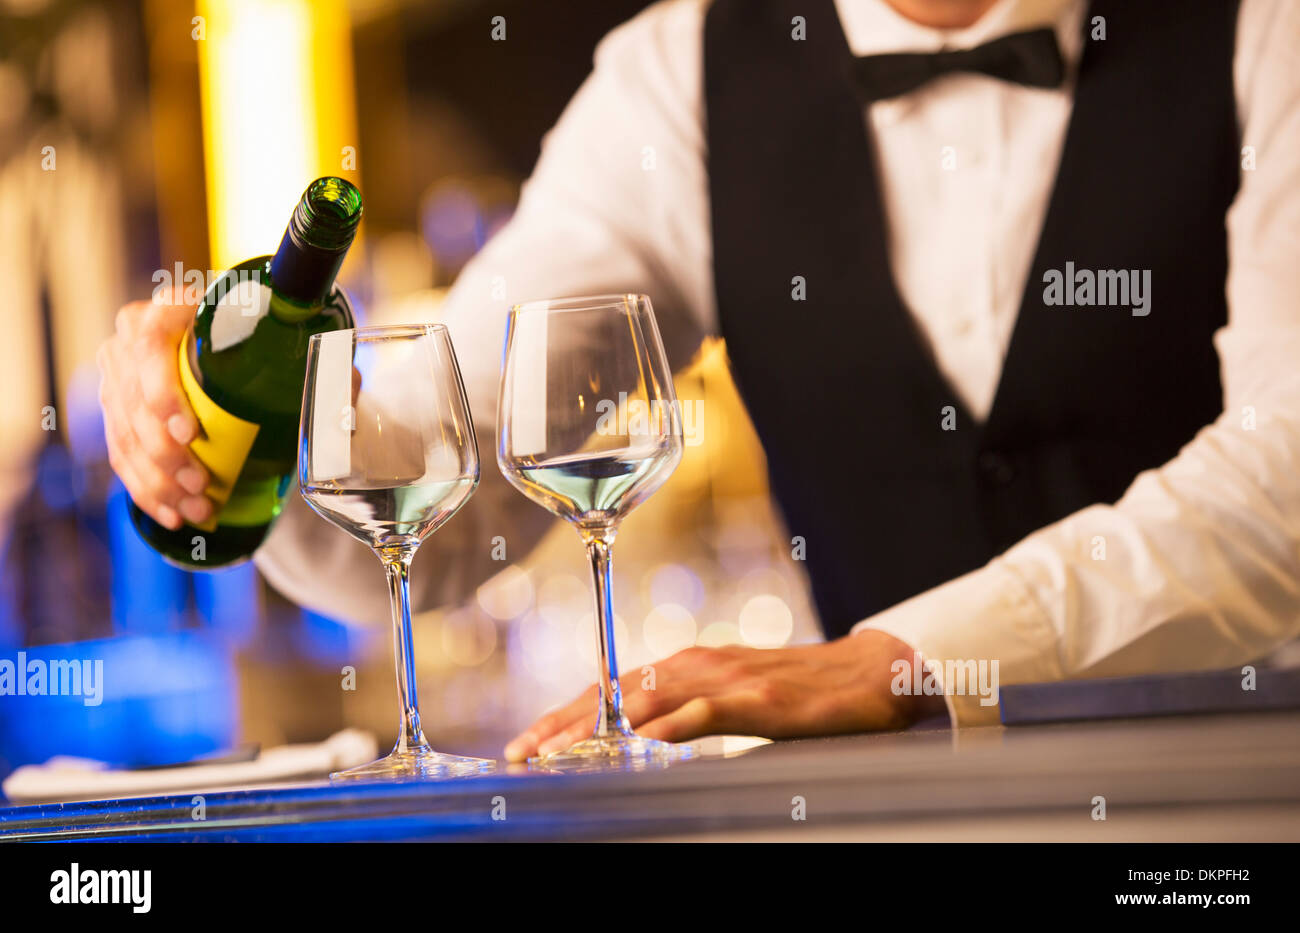 Well dressed bartender pouring wine - Stock Image